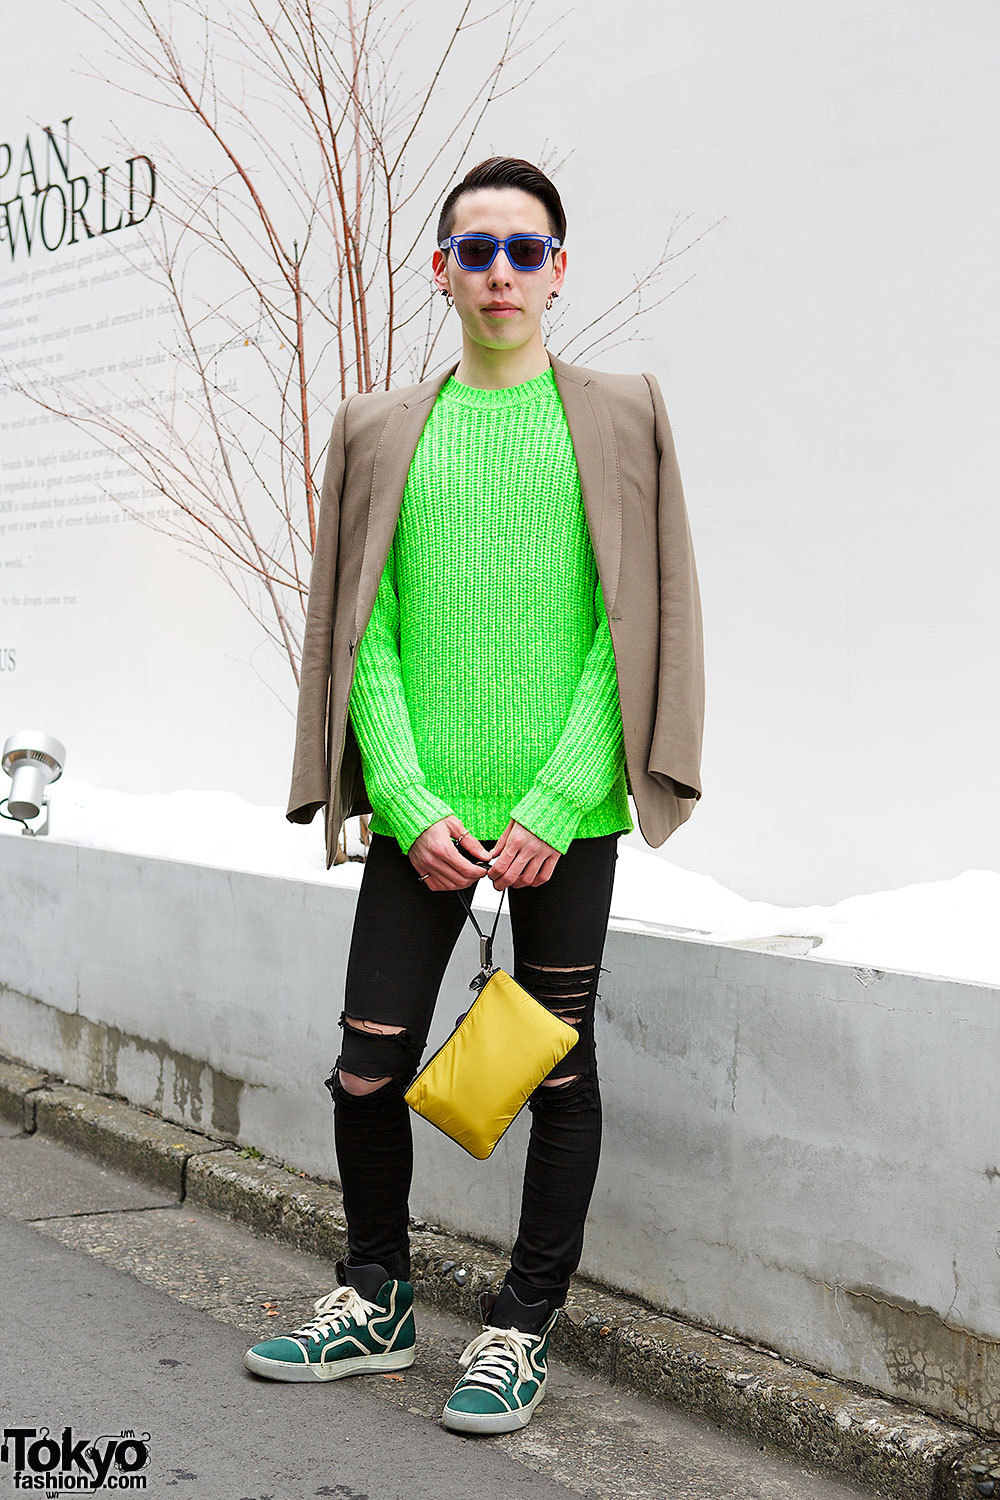 Ryo in Harajuku with a neon Kenzo sweater under a Julius blazer, ripped skinny jeans, a Jil Sander clutch & Lanvin sneakers.